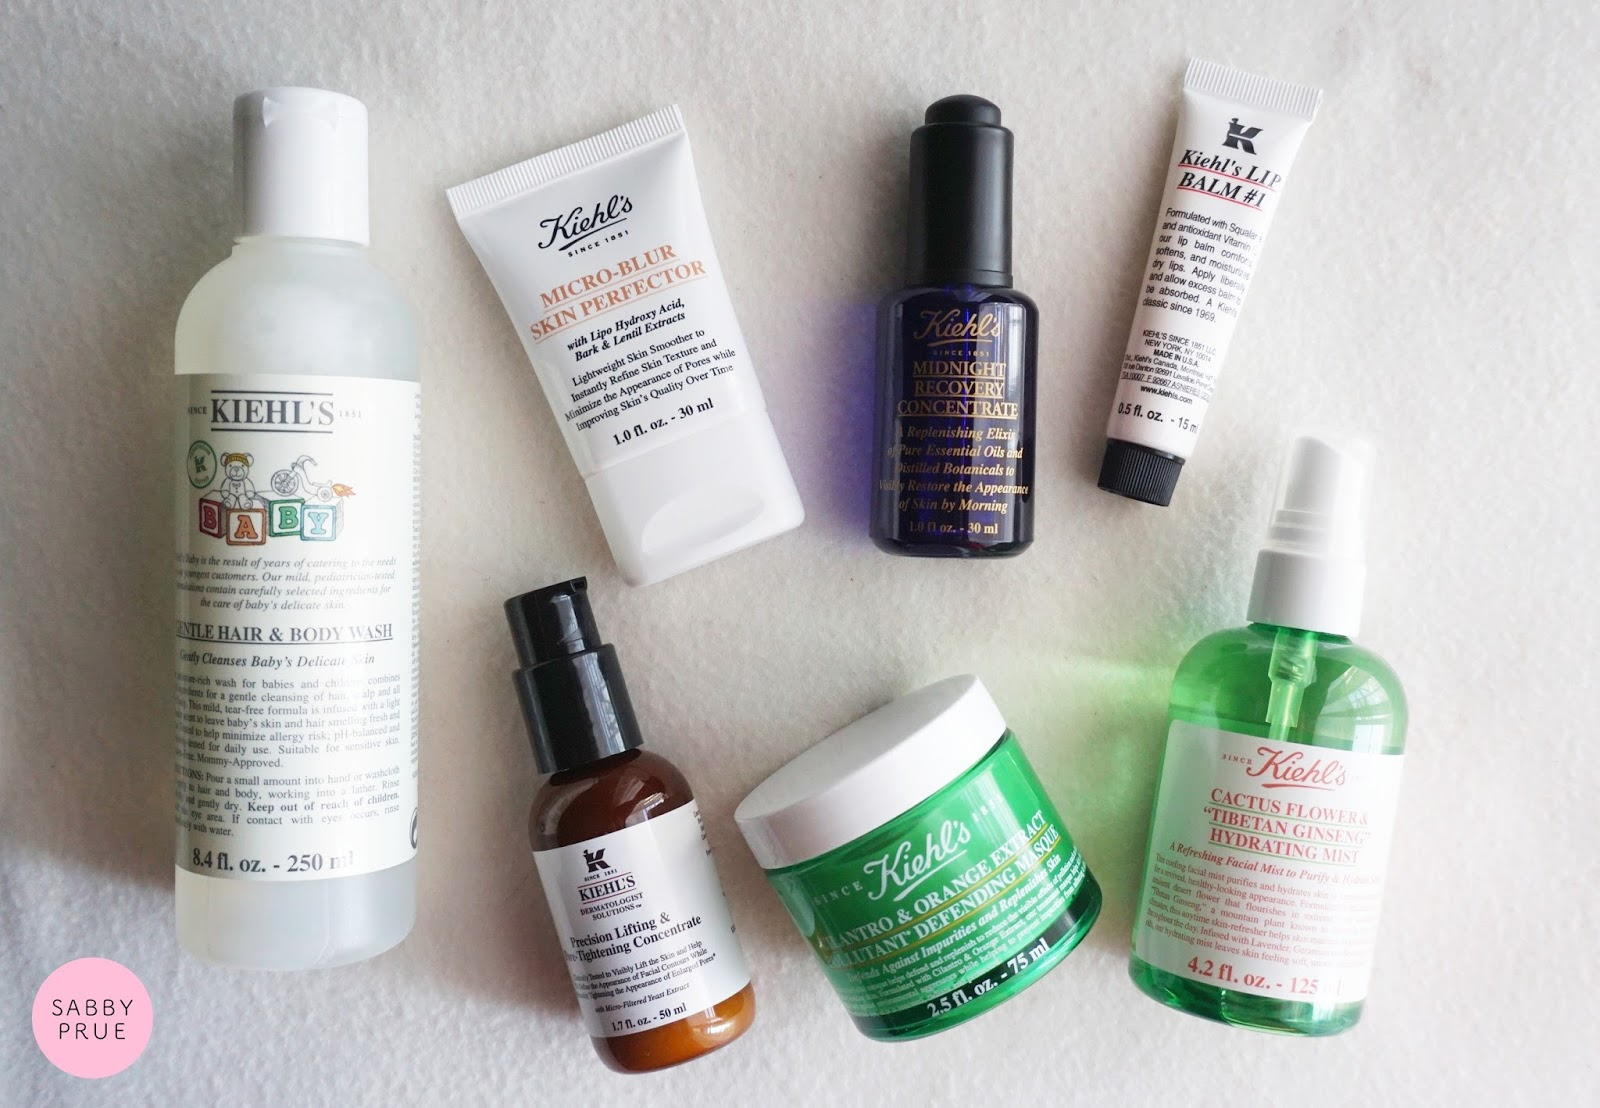 Unboxing Kiehls Haul Sabby Prue Malaysian Beauty Baby Lip Balm Excited To Try These Out